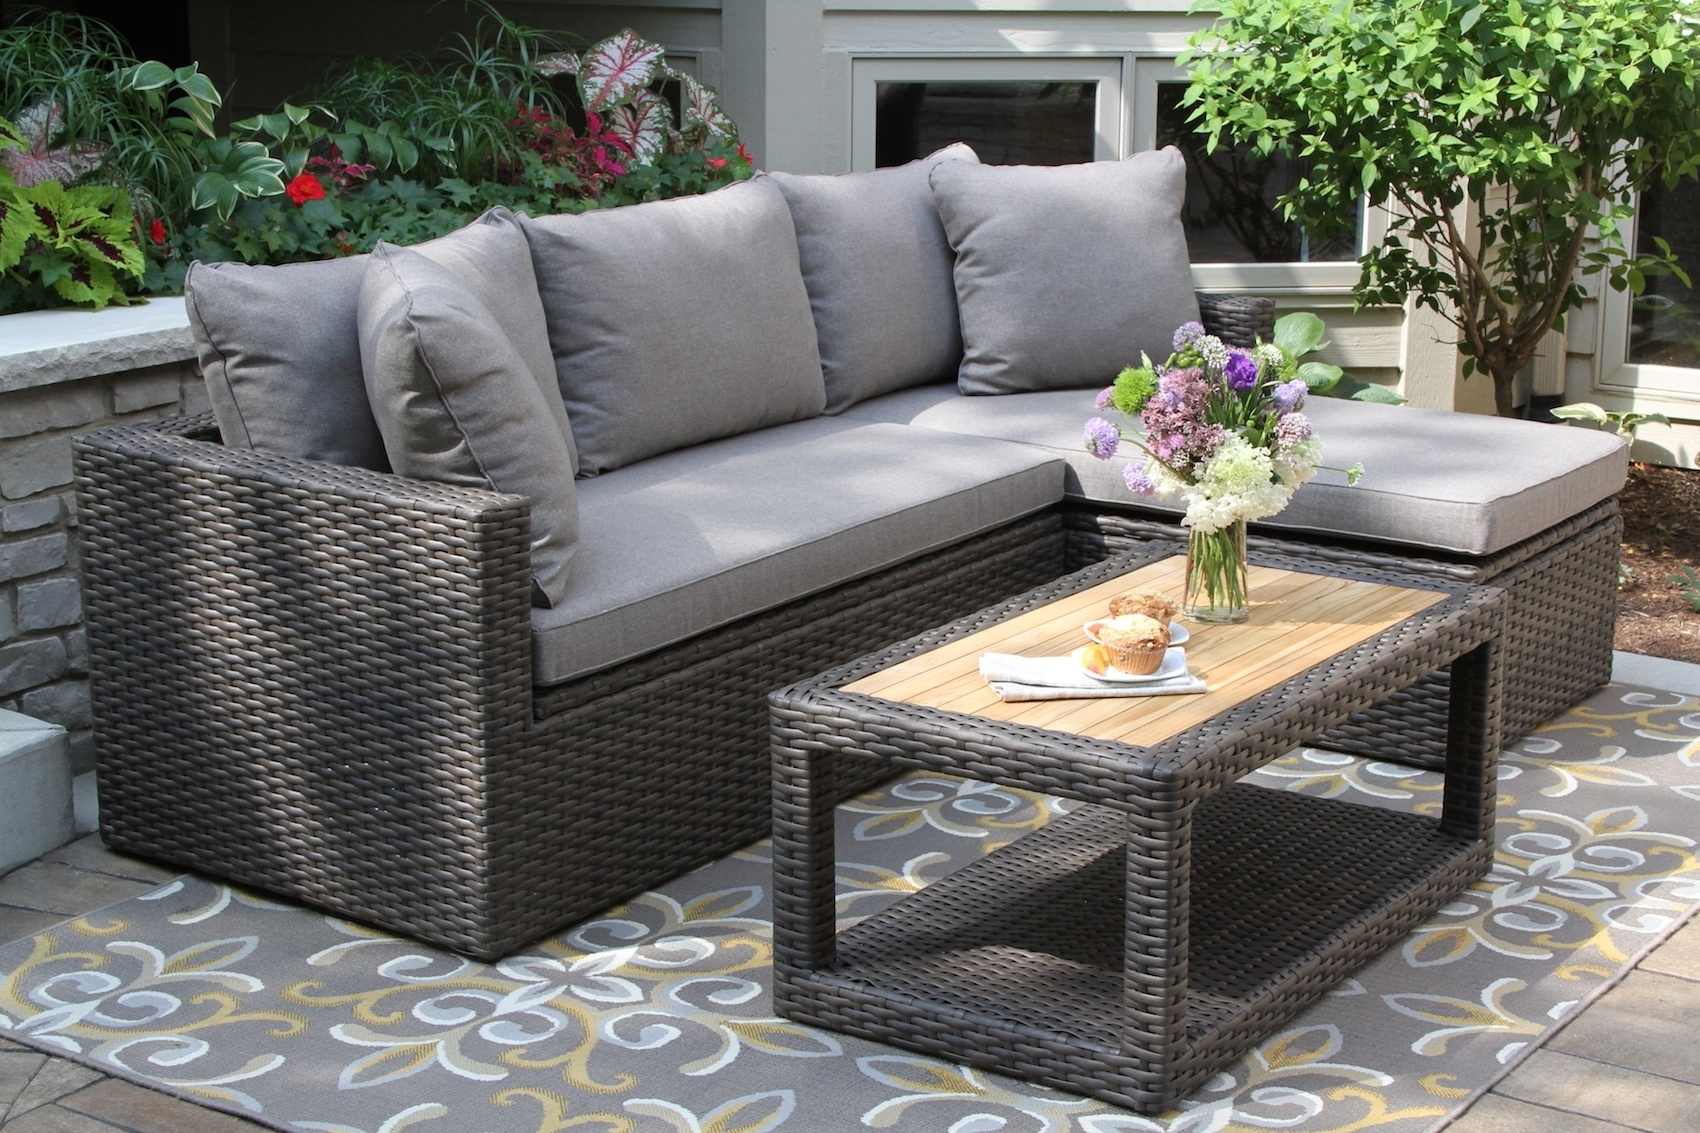 Well Known Teak And Eucalyptus Wood Outdoor Furniture, Torches, Planters Inside Patio Conversation Sets With Storage (View 11 of 15)